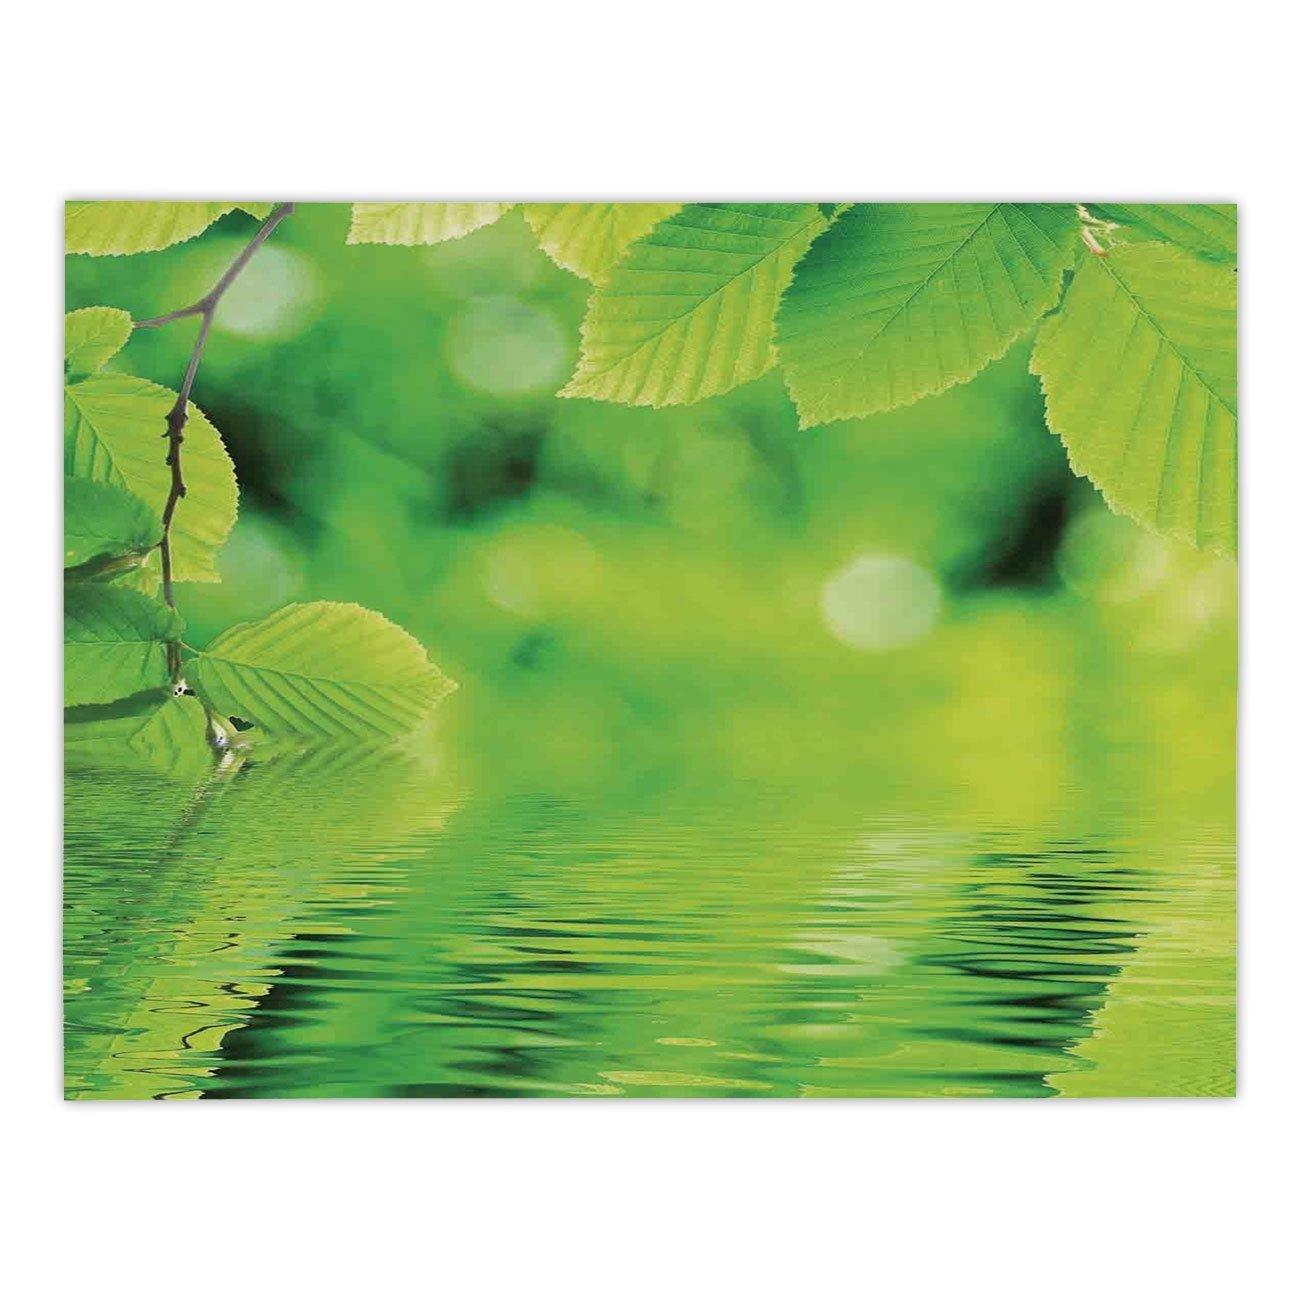 iPrint Rectangular Satin Tablecloth,Leaves,Leaves in Water Spa Open Your Chakra with Nature Meditation Ecological Monochrome Photo,Green,Dining Room Kitchen Table Cloth Cover